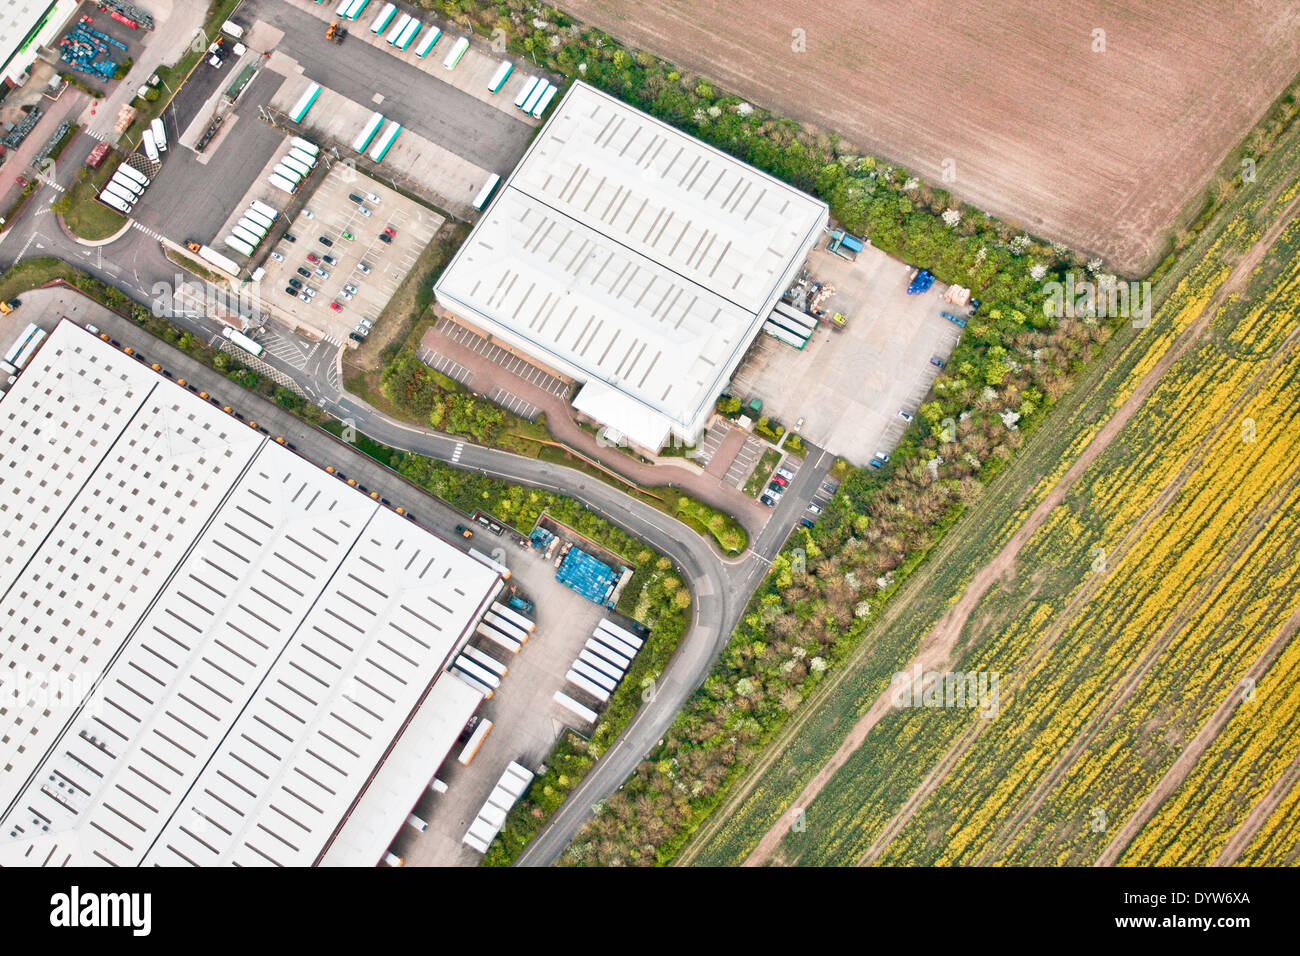 Aerial view of a group of warehouses in Cambridgeshire, UK Stock Photo